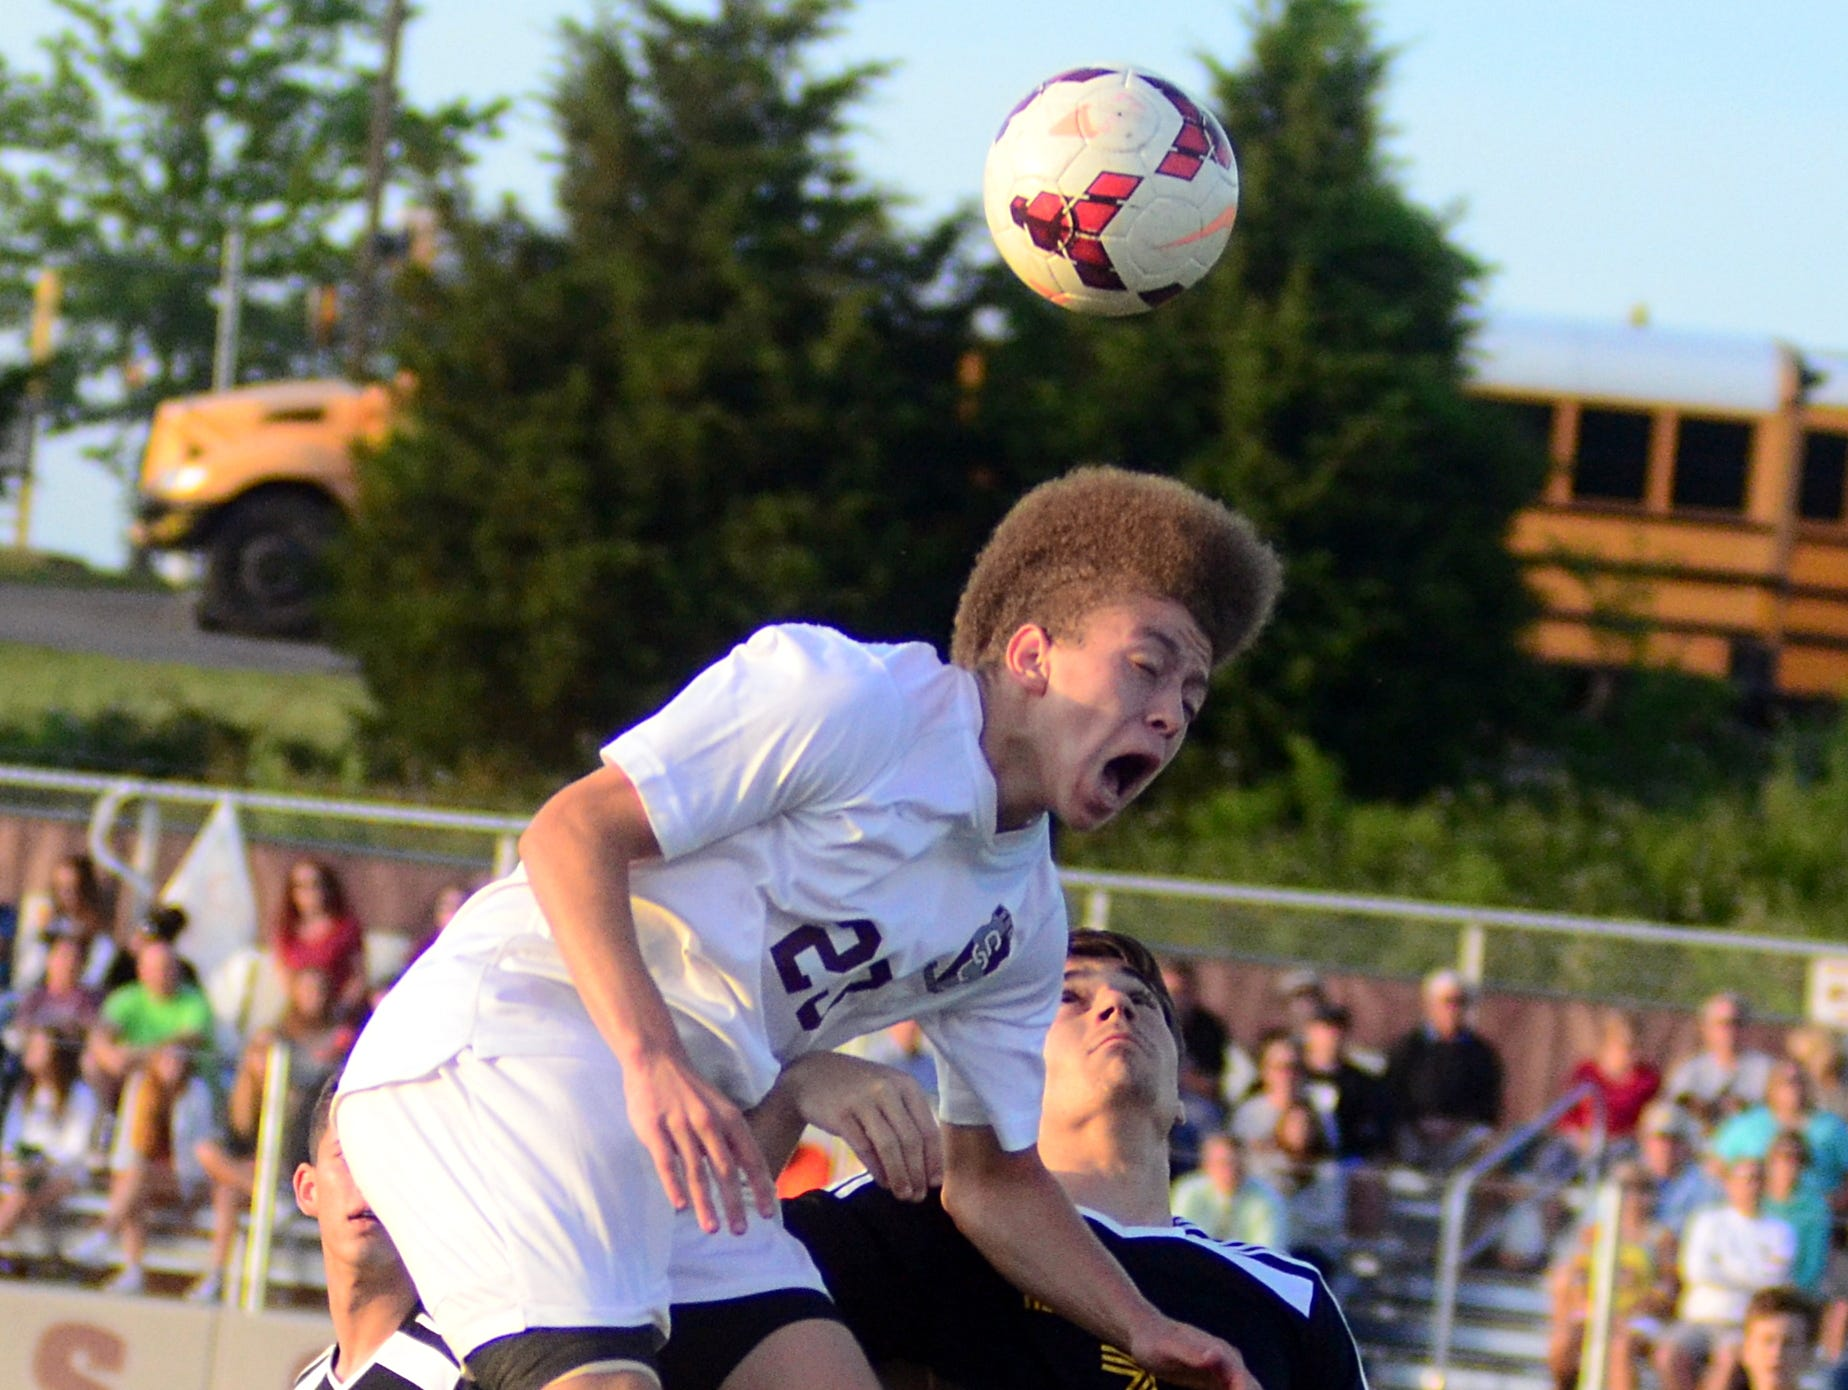 Station Camp High junior Chase Freeman elevates for a header against Hendersonville senior Thomas Roberts during first-half action. Freeman had a goal and an assist in the Bison's 2-1 victory on Thursday evening.